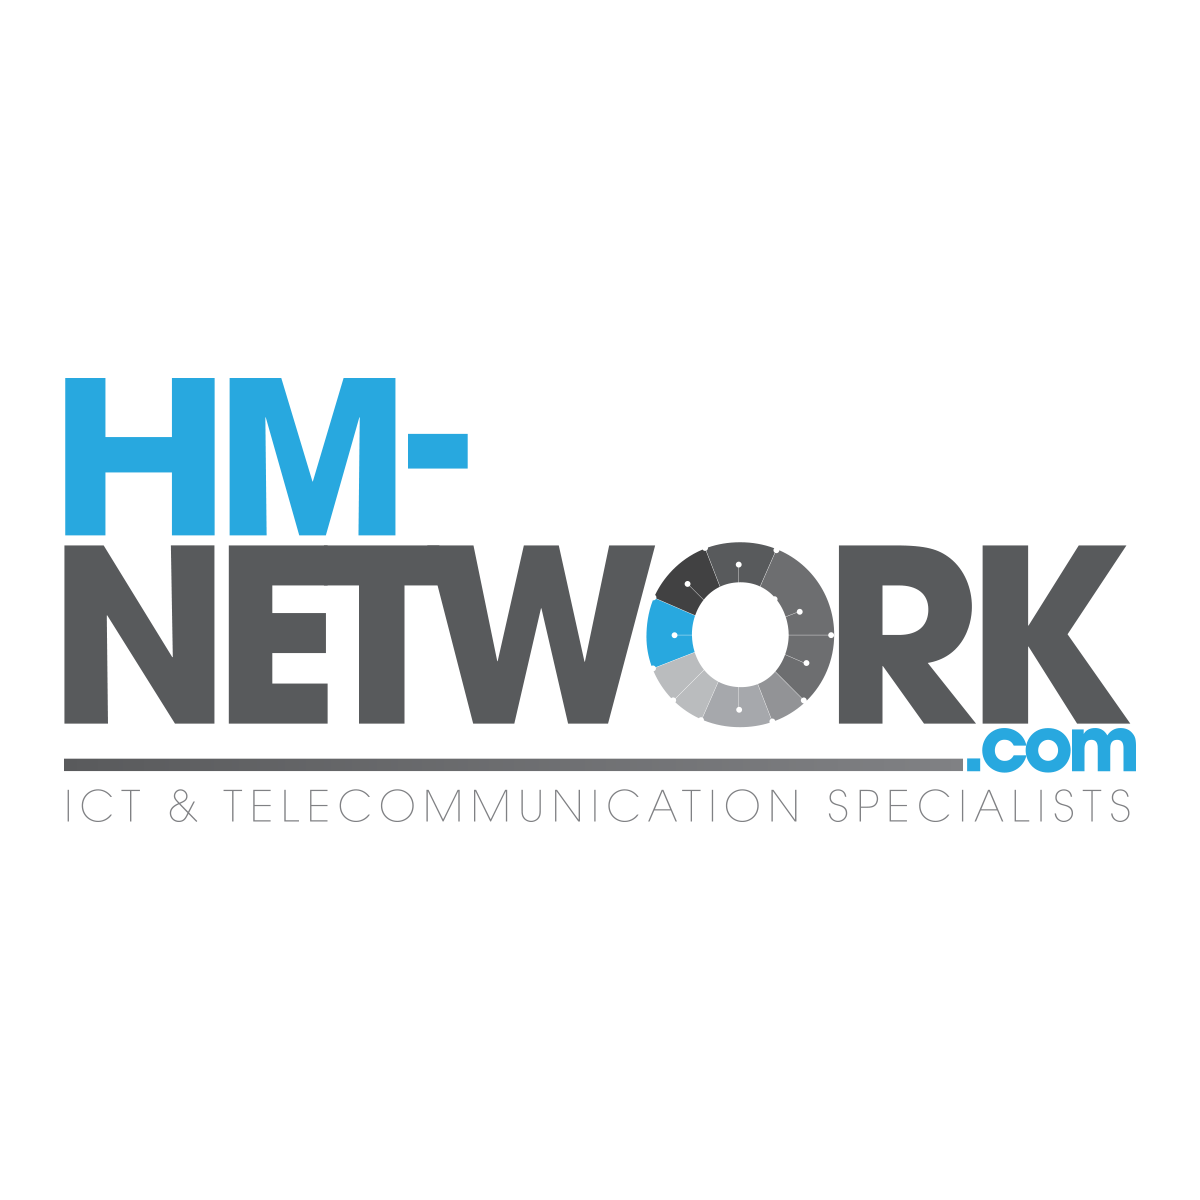 HM Network logo Black Transparent.png